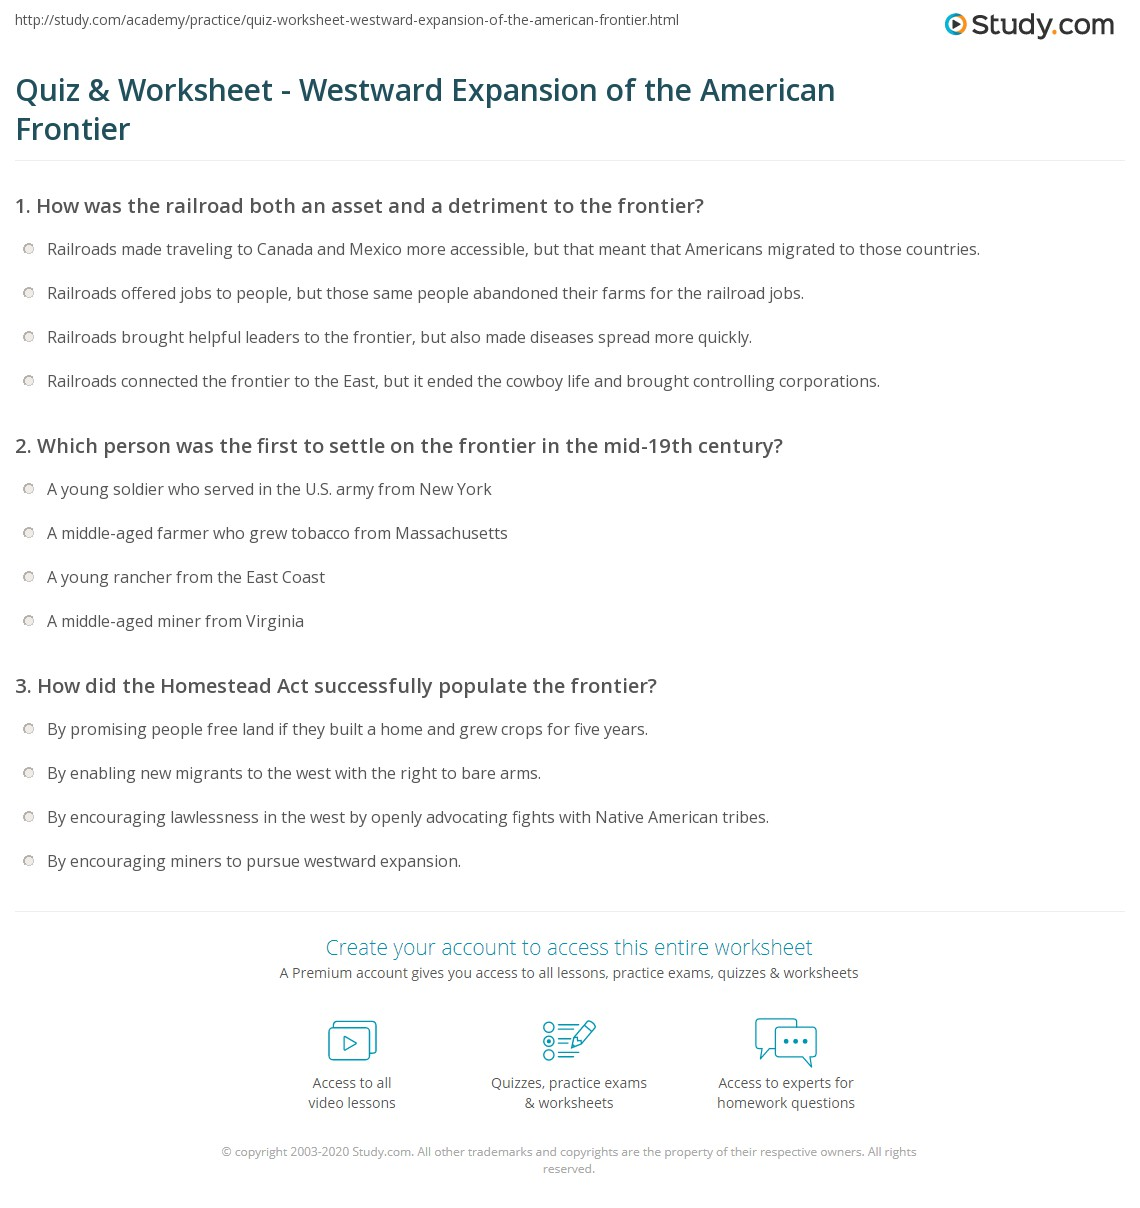 westward expansion worksheet delibertad quiz worksheet westward expansion of the american frontier